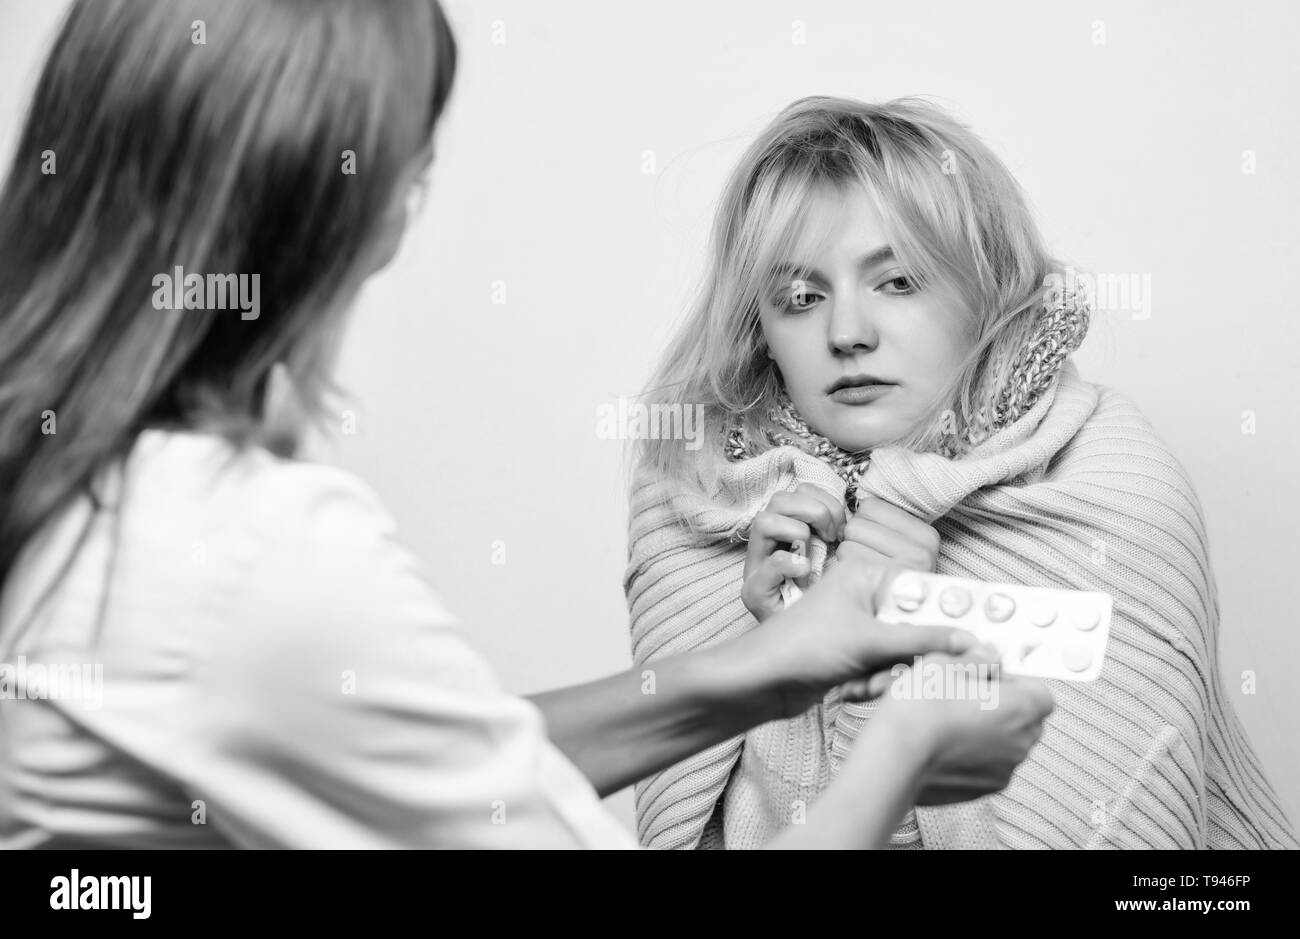 Getting medical help. Primary care doctor making diagnosis to sick woman. Doctor visiting unhealthy woman at home. Medical doctor examining patient. Patient care and healthcare. - Stock Image